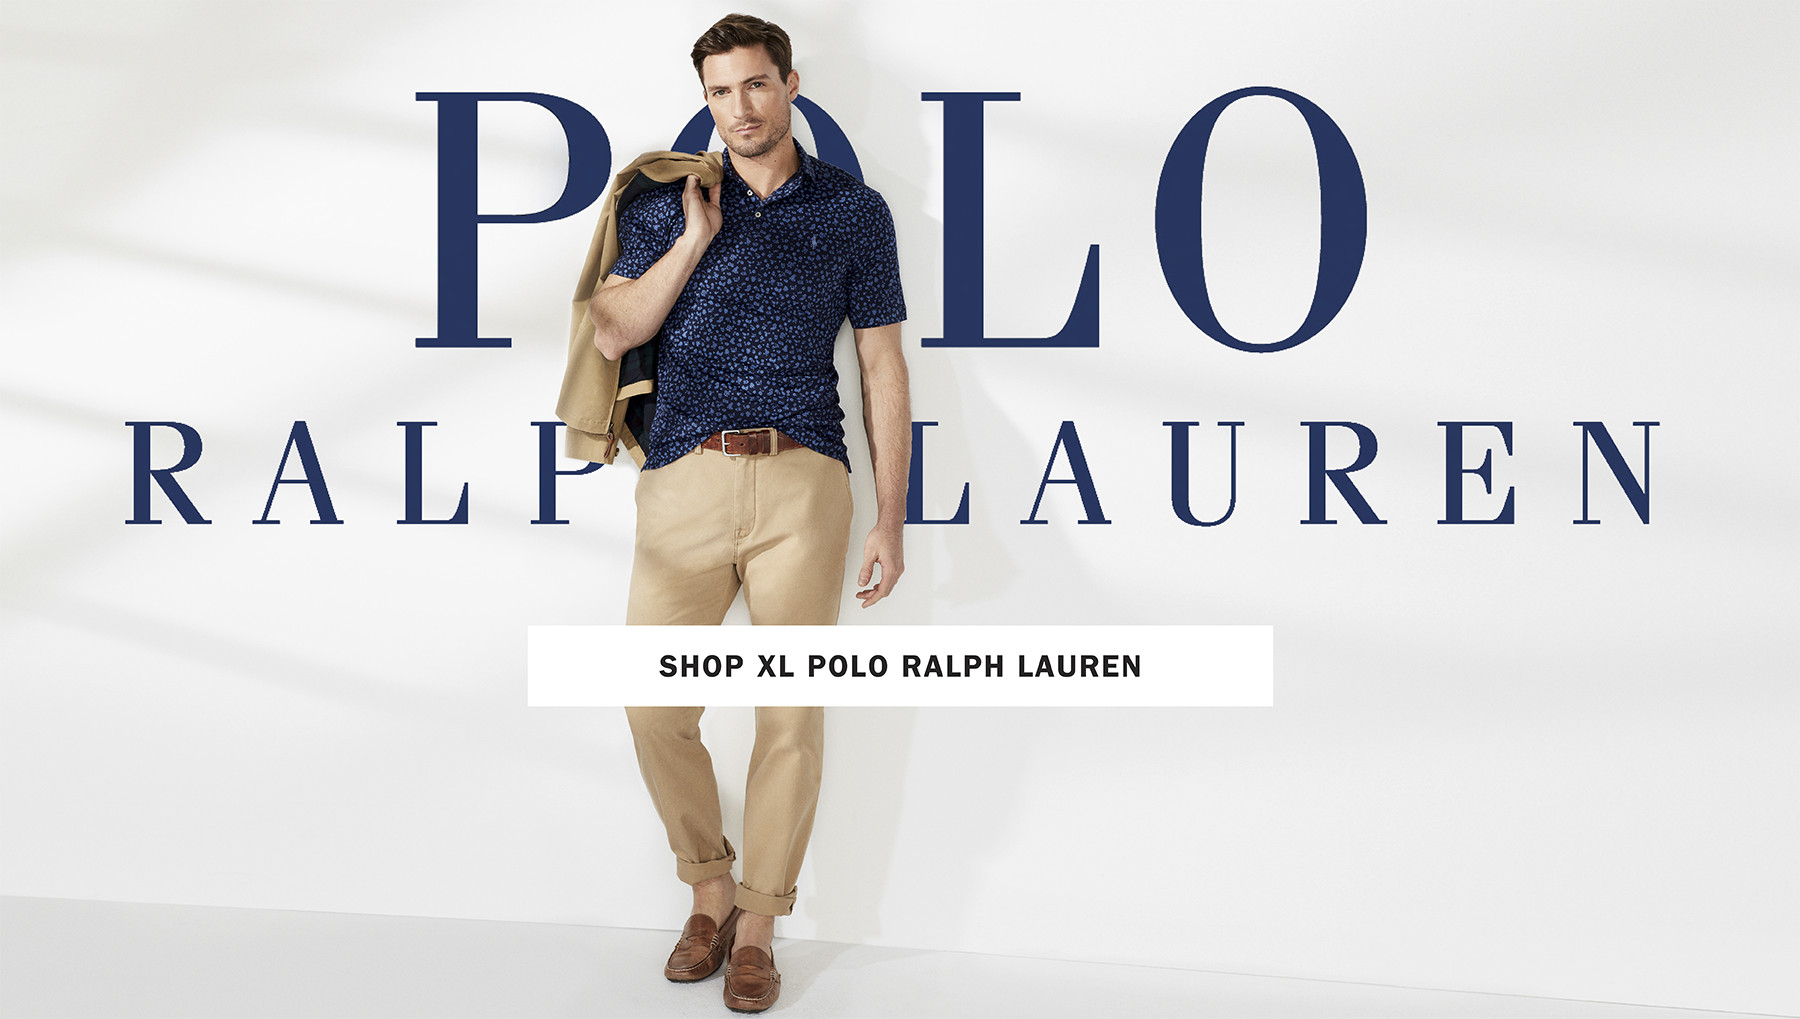 SHOP XL POLO RALPH LAUREN